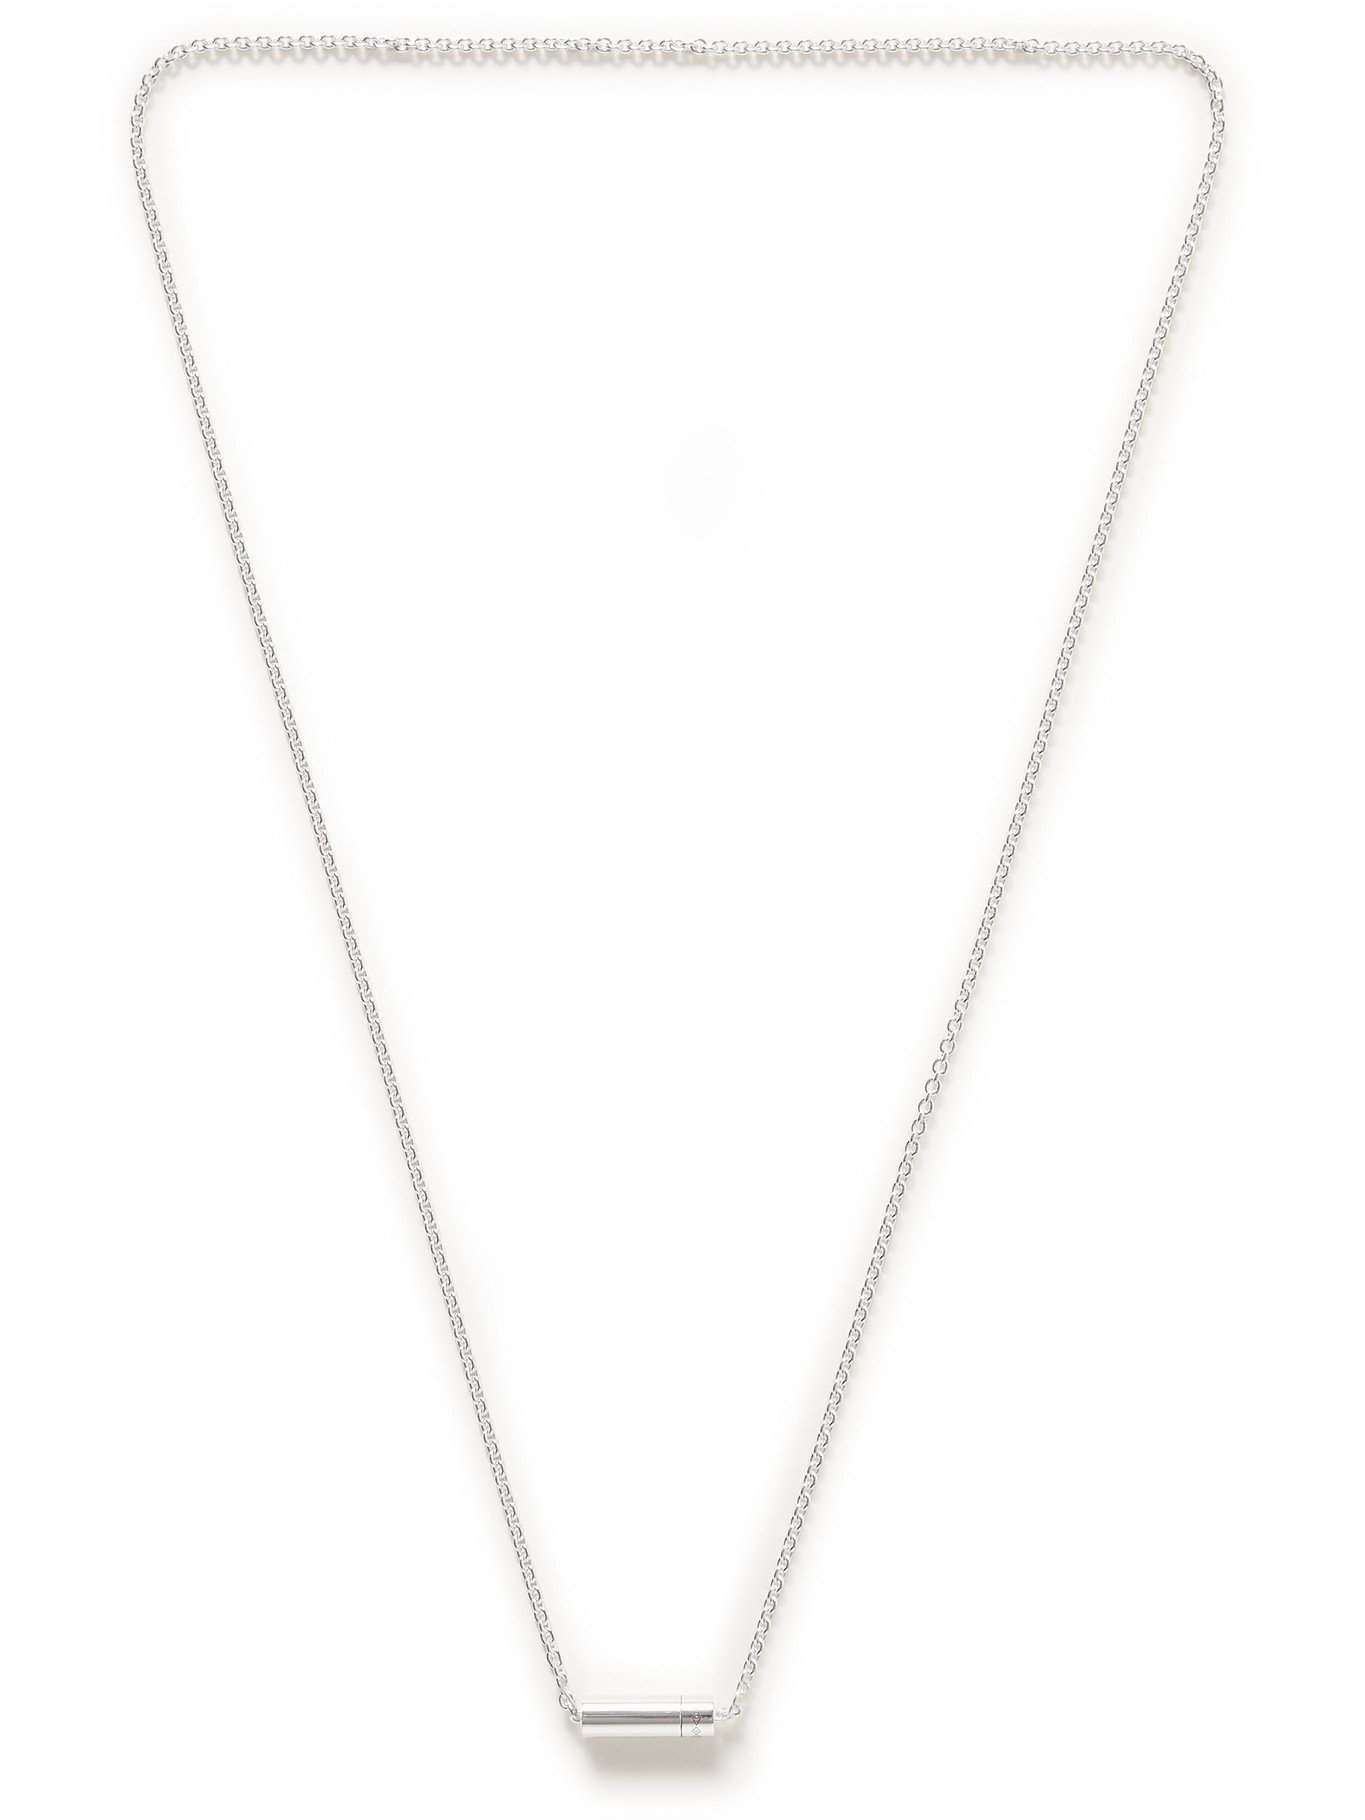 Photo: LE GRAMME - 13g Sterling Silver Chain Necklace - Silver